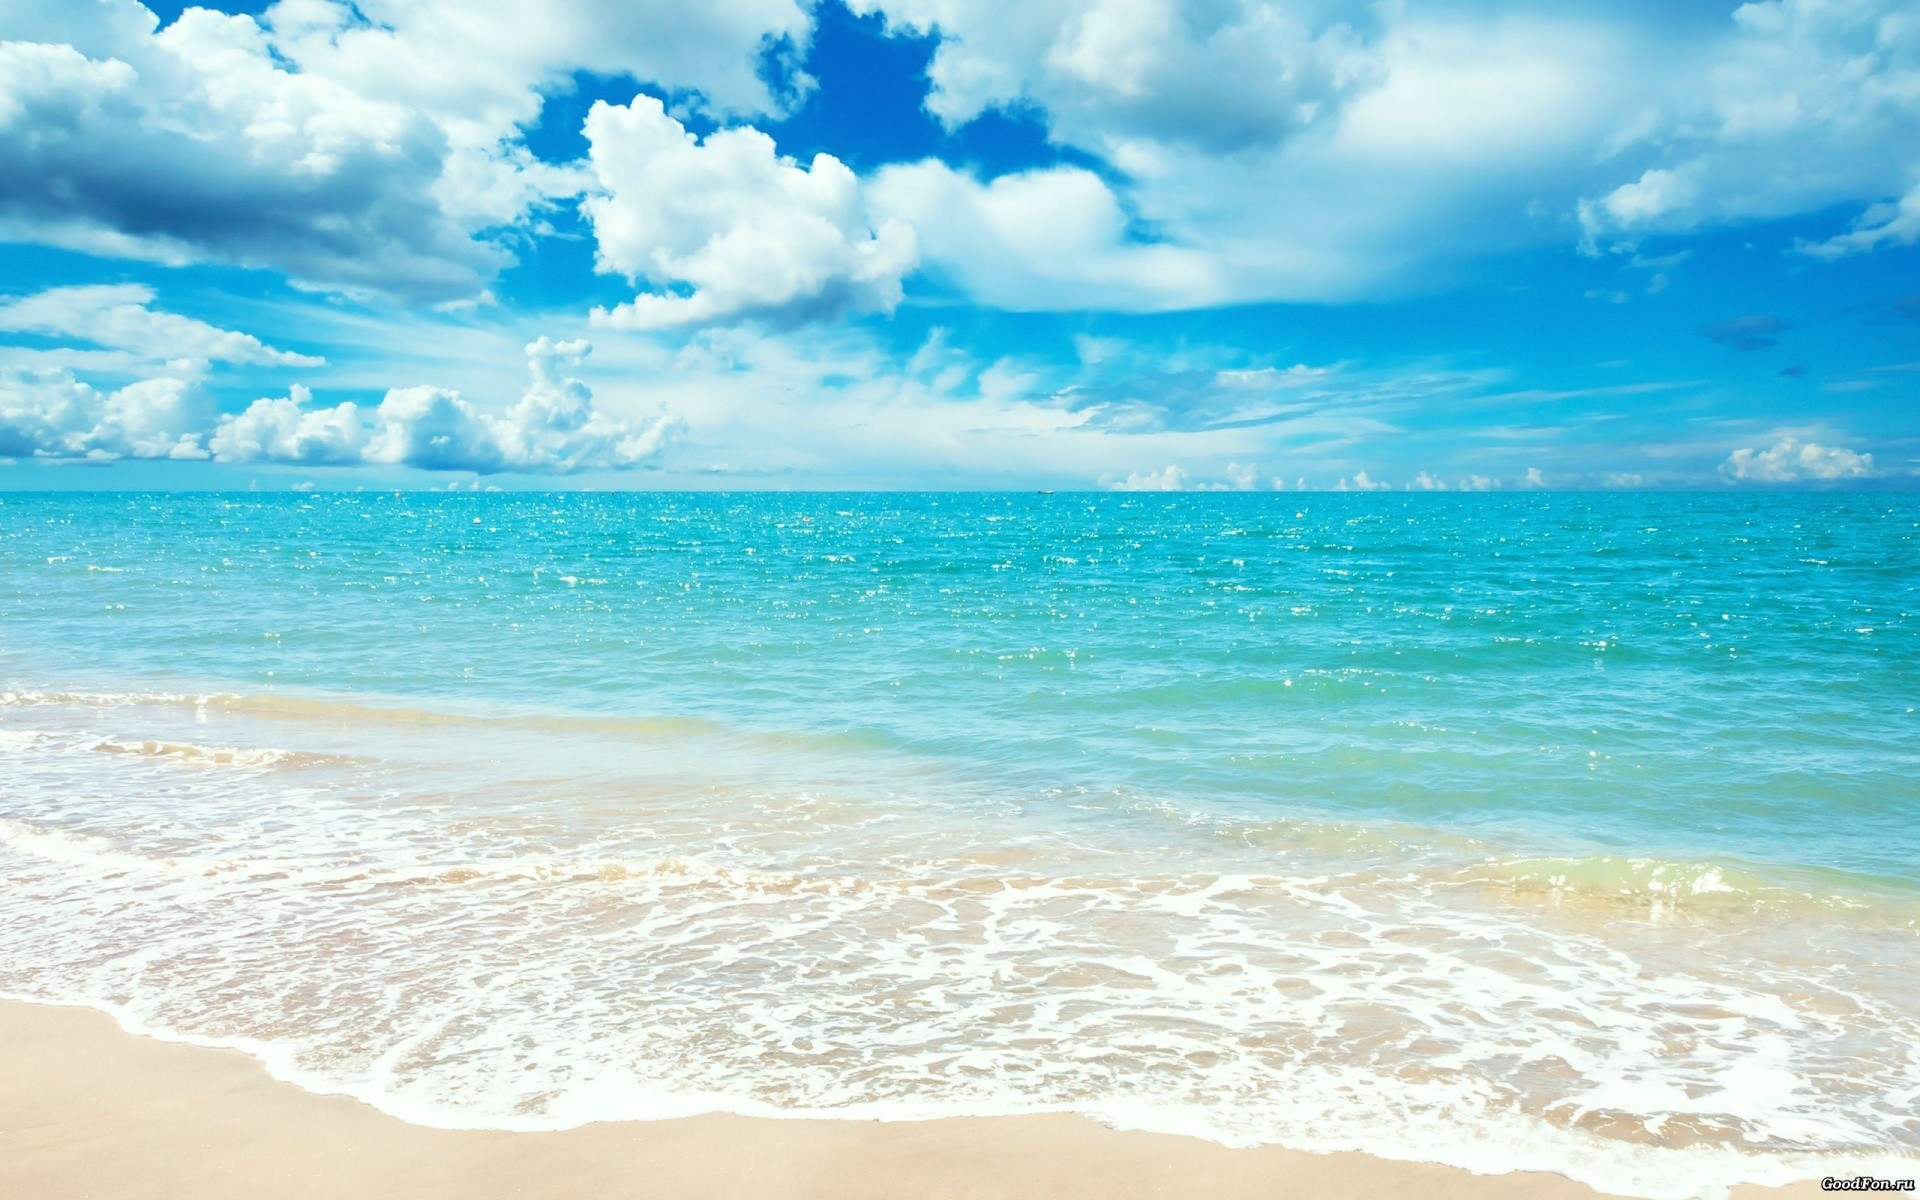 Ocean wallpapers and screensavers 66 images - Ocean pictures for desktop background ...